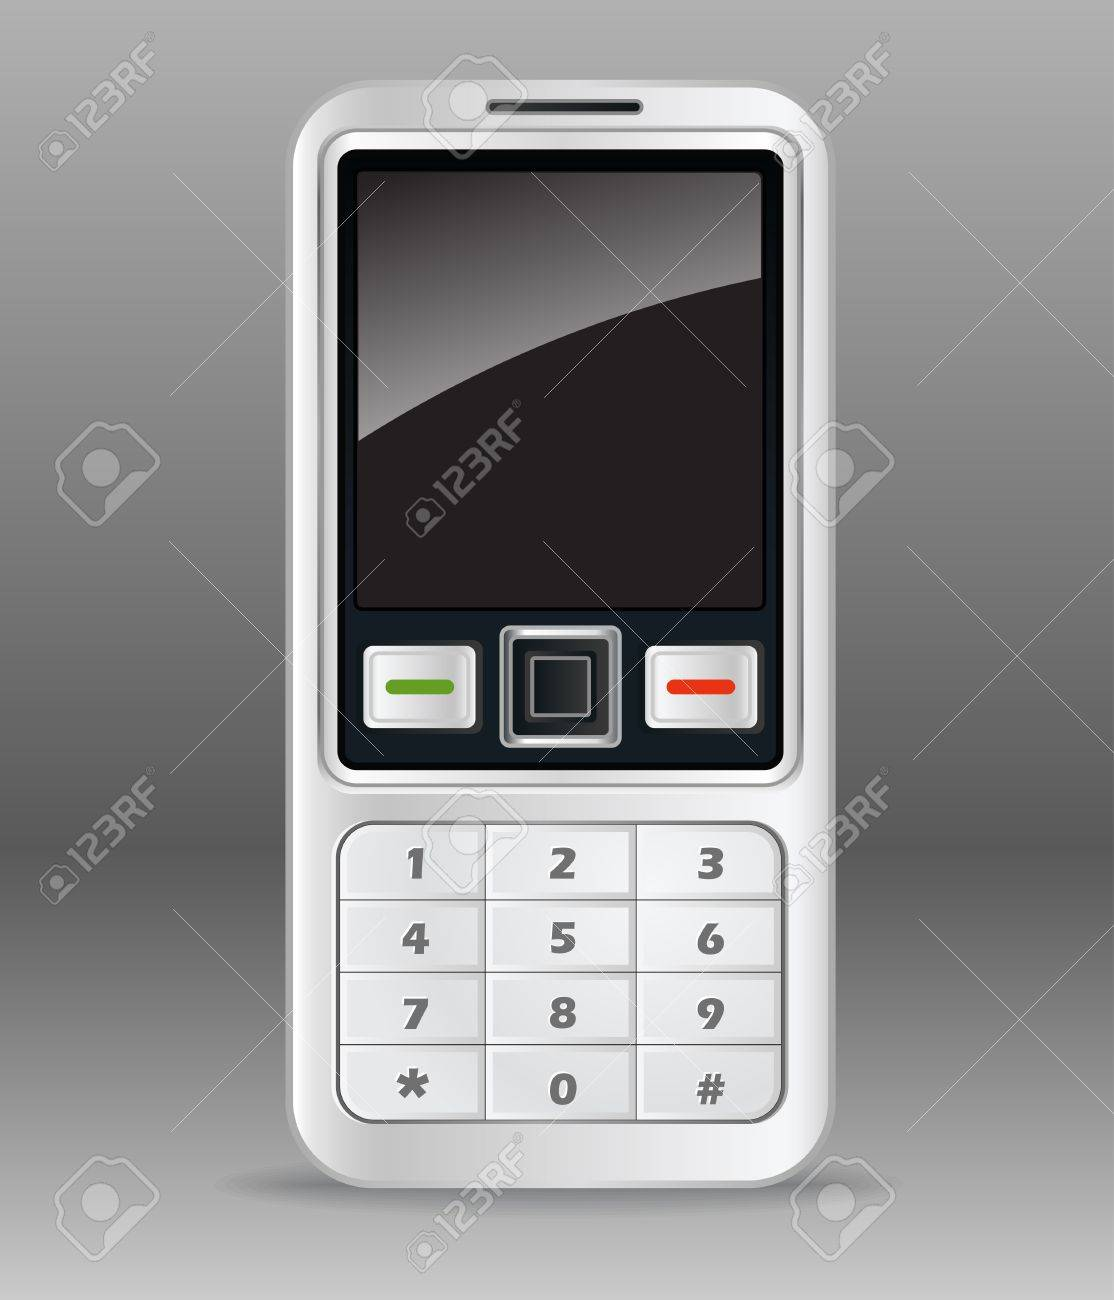 Old mobile phone illustration Stock Vector - 11430904